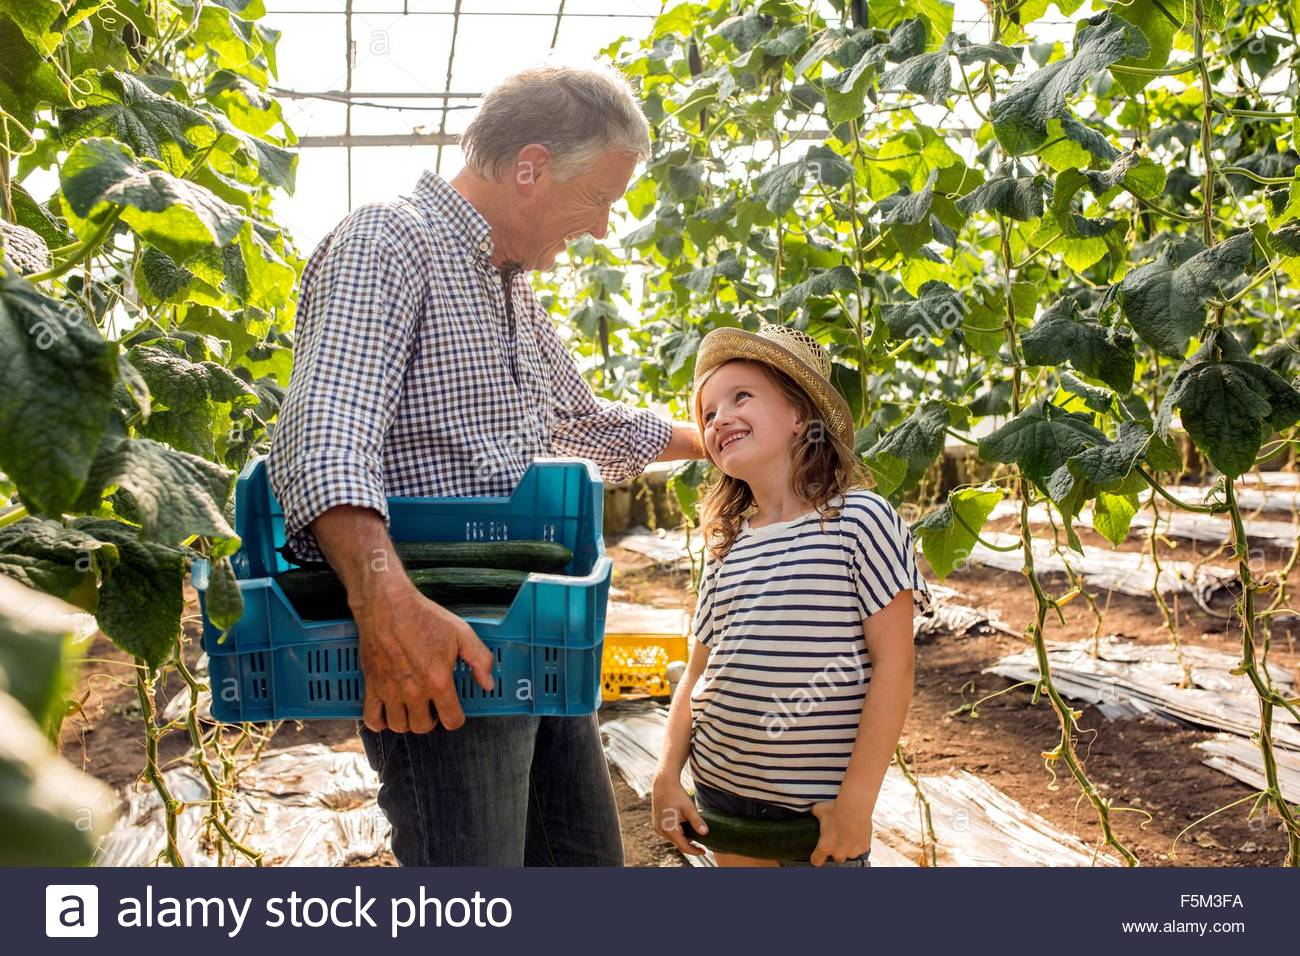 Grandfather and granddaughter in hothouse holding cucumbers trying on hat - Stock Image